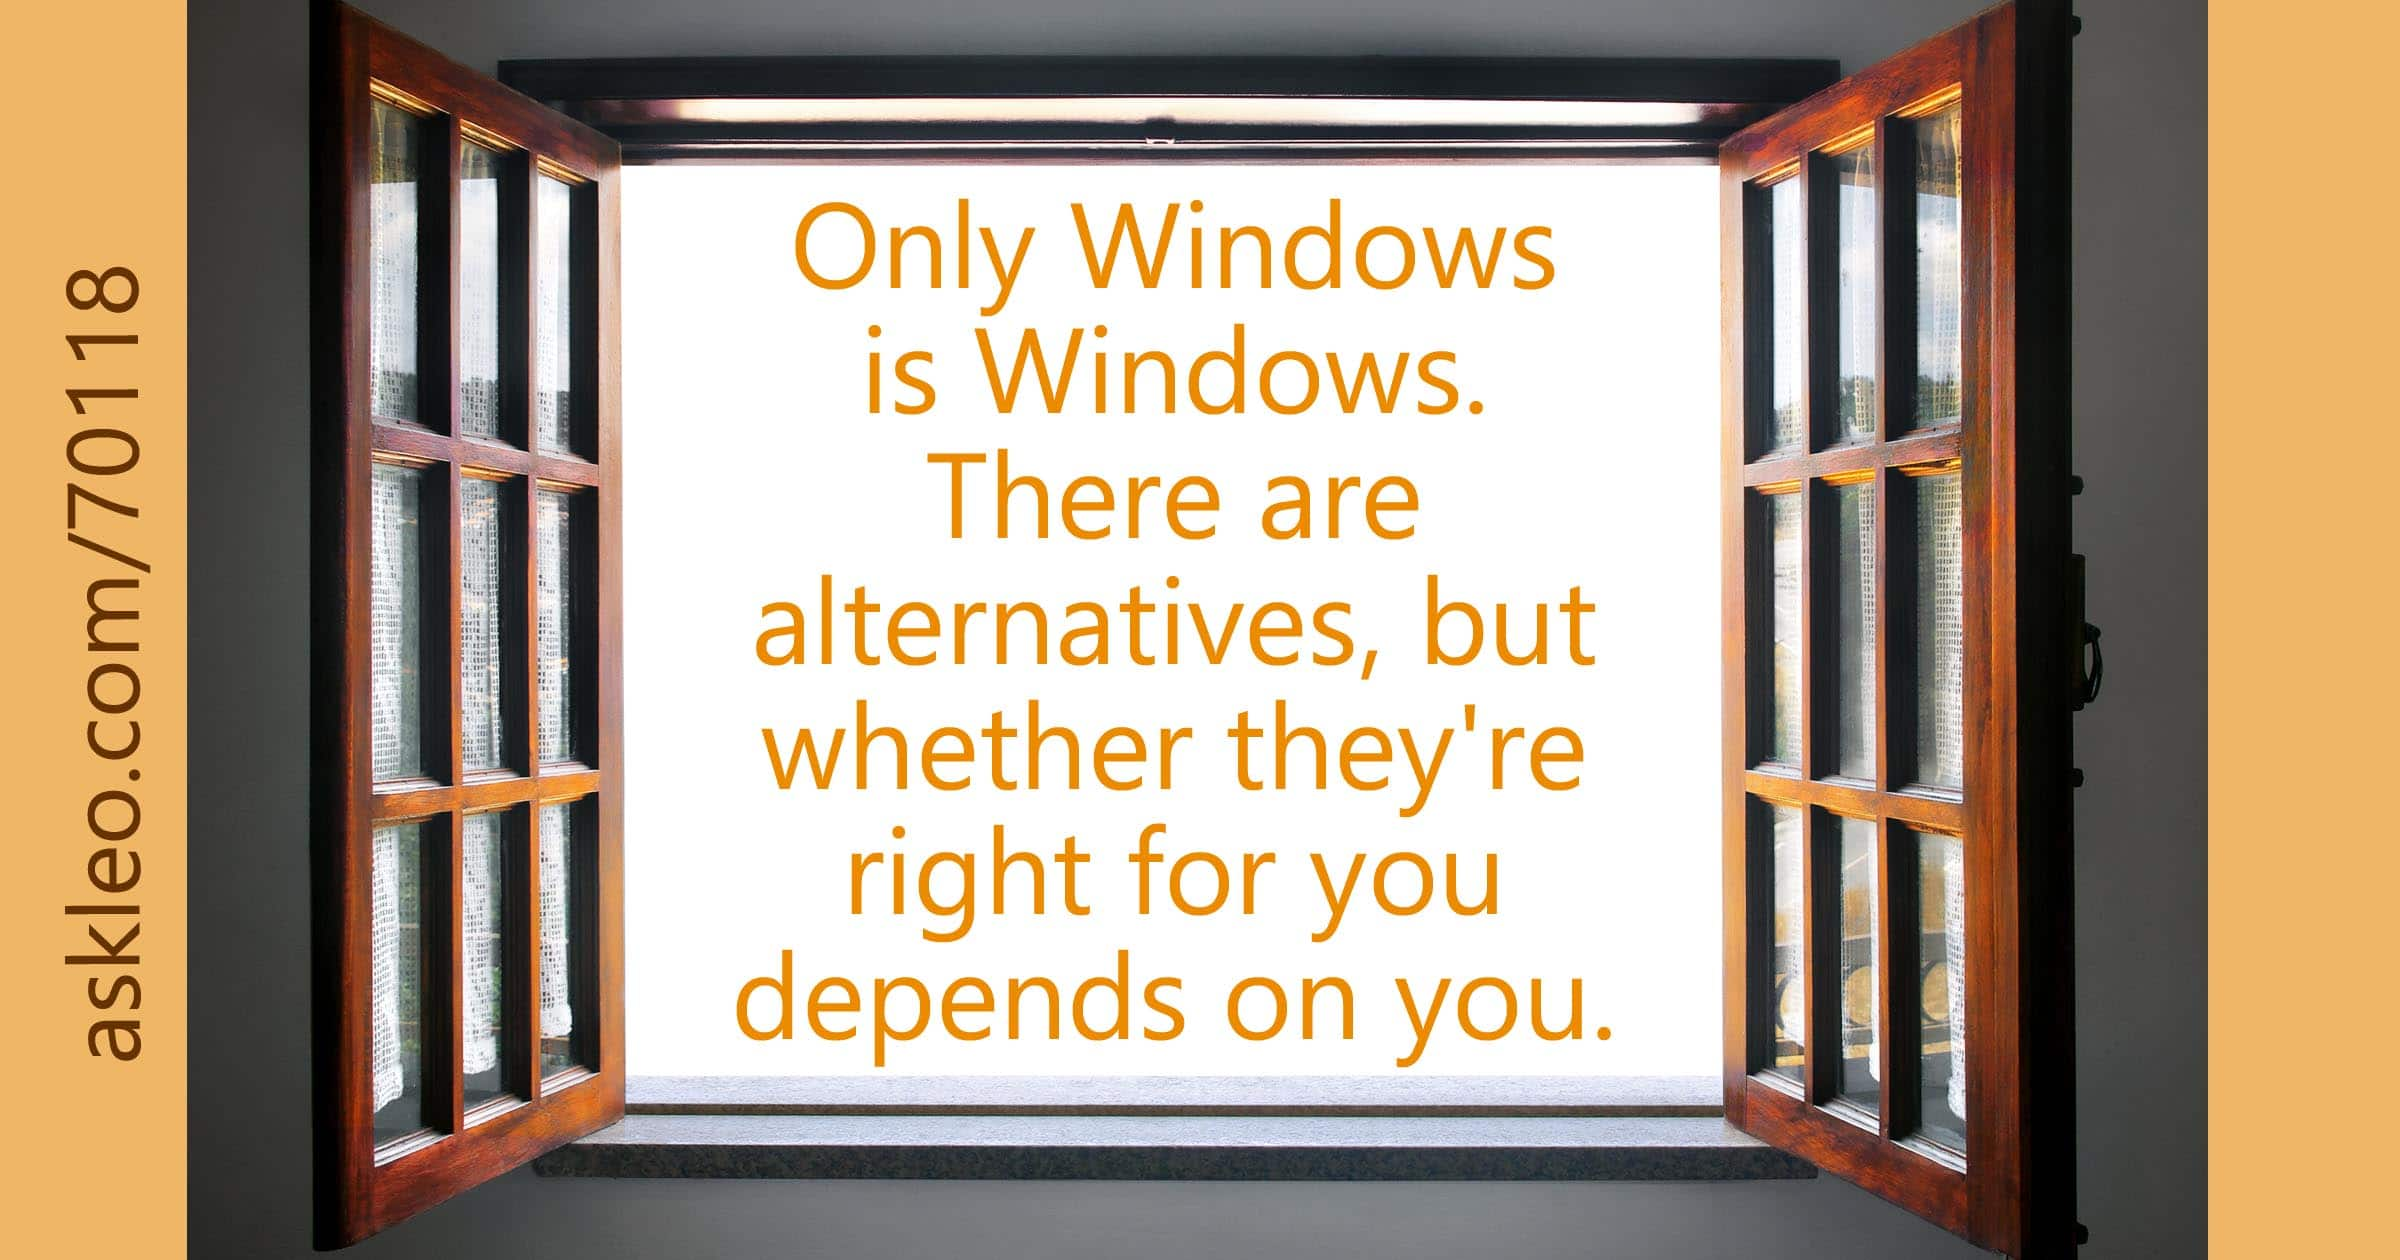 Is There a Real Alternative to Windows? - Ask Leo!